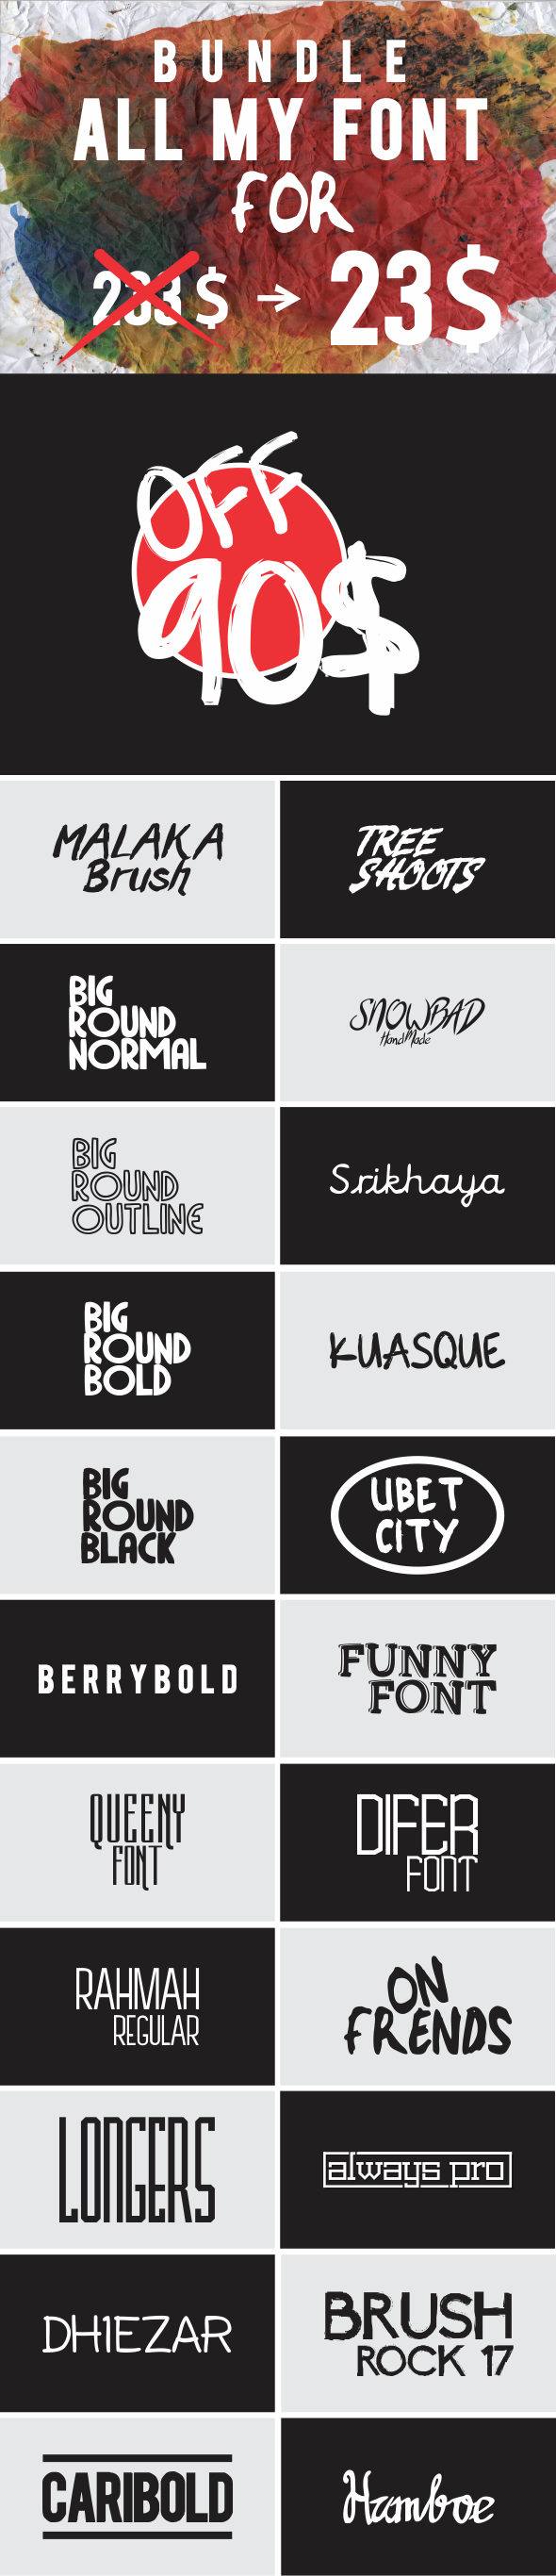 BUNDLE ALL MY FONT